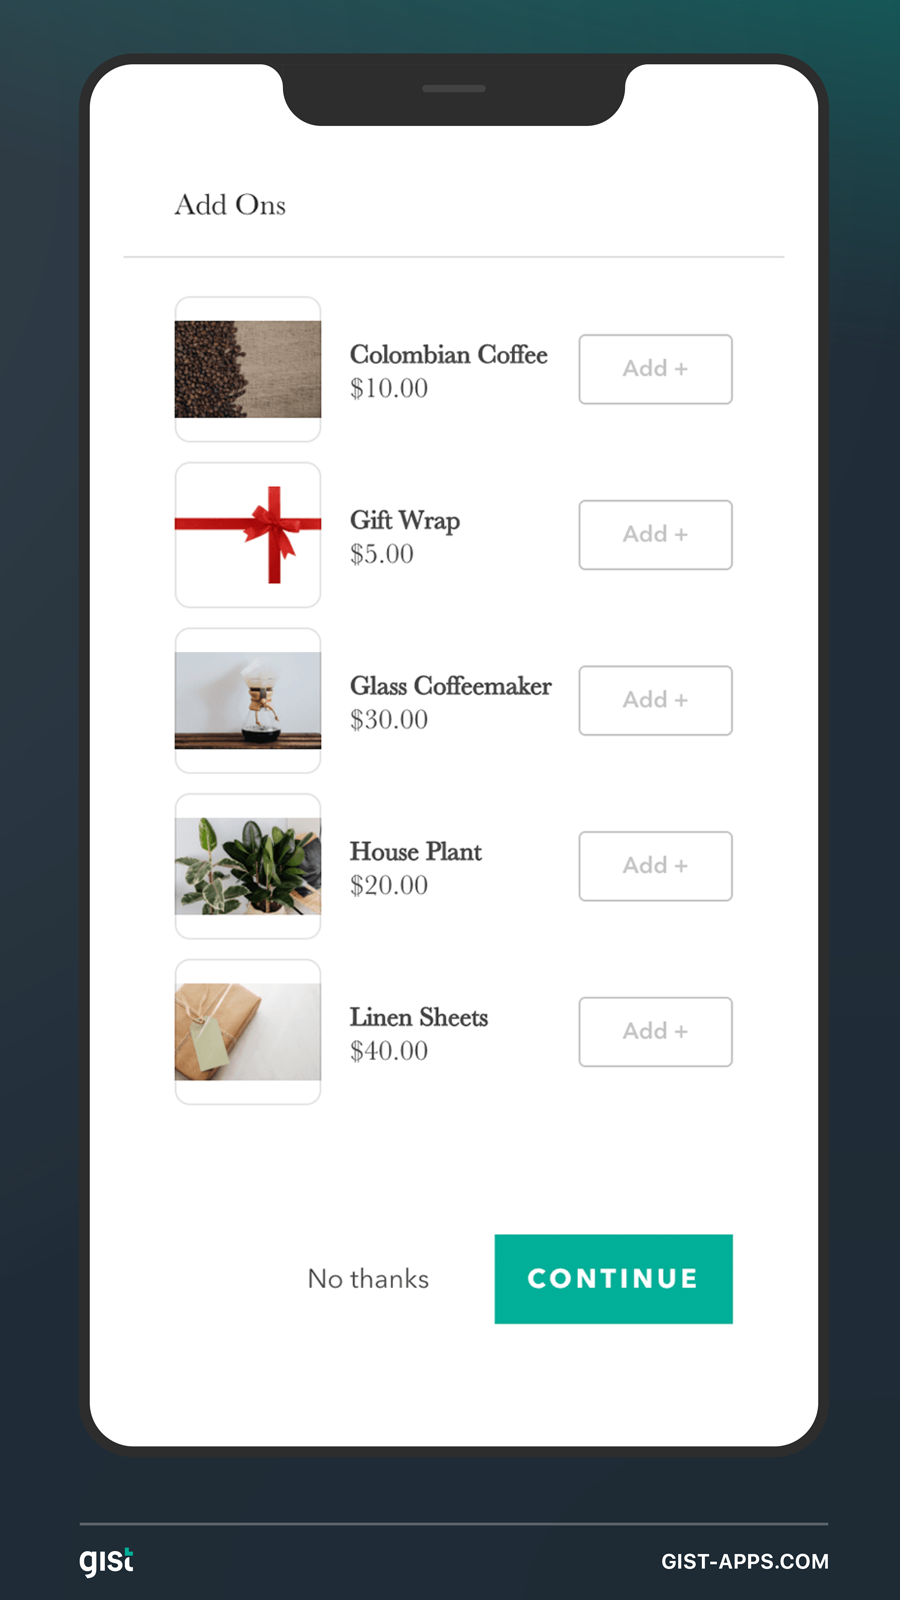 Add a gifting upsell to your order even on mobile.